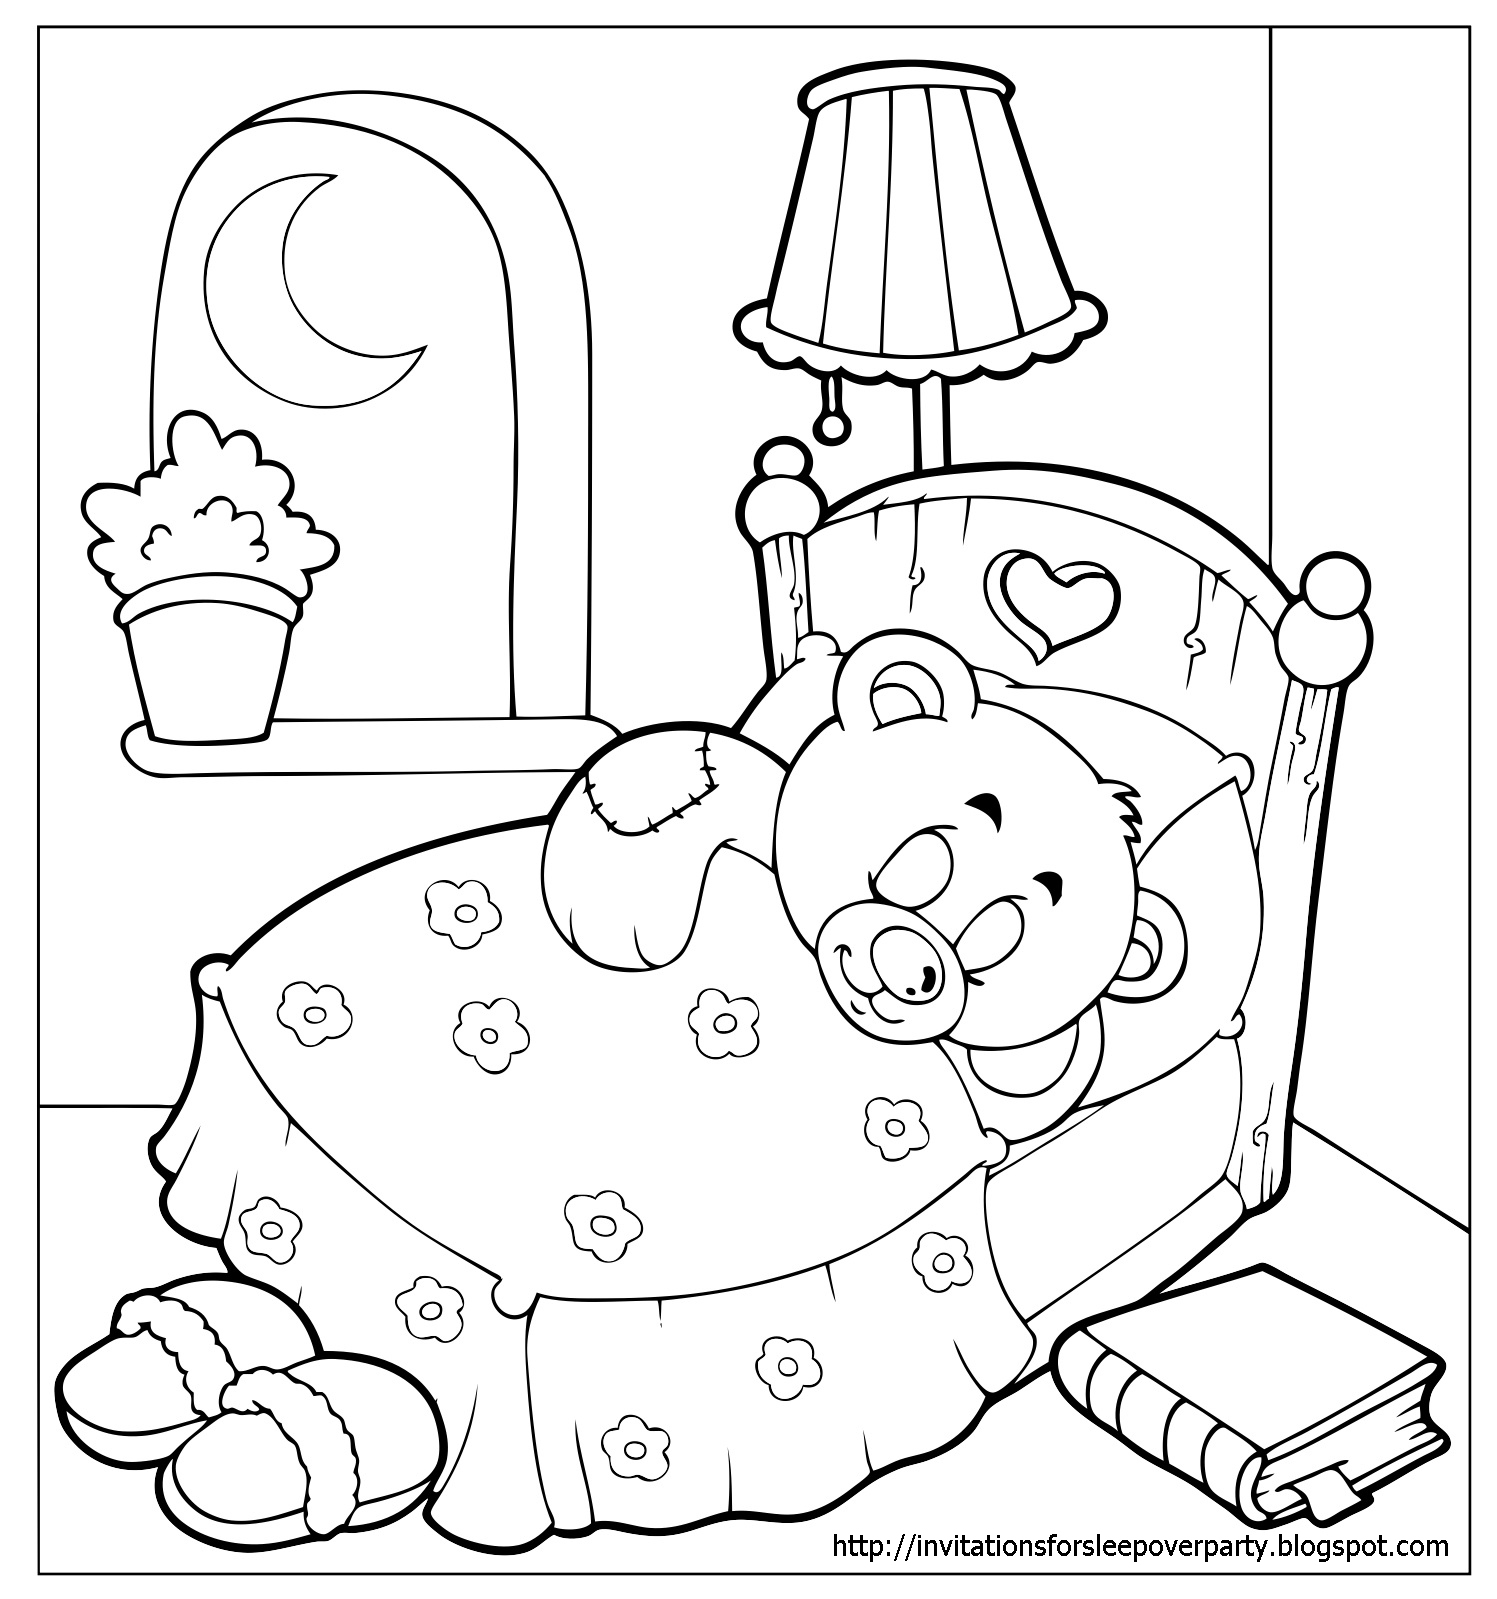 coloring pages party - photo#26